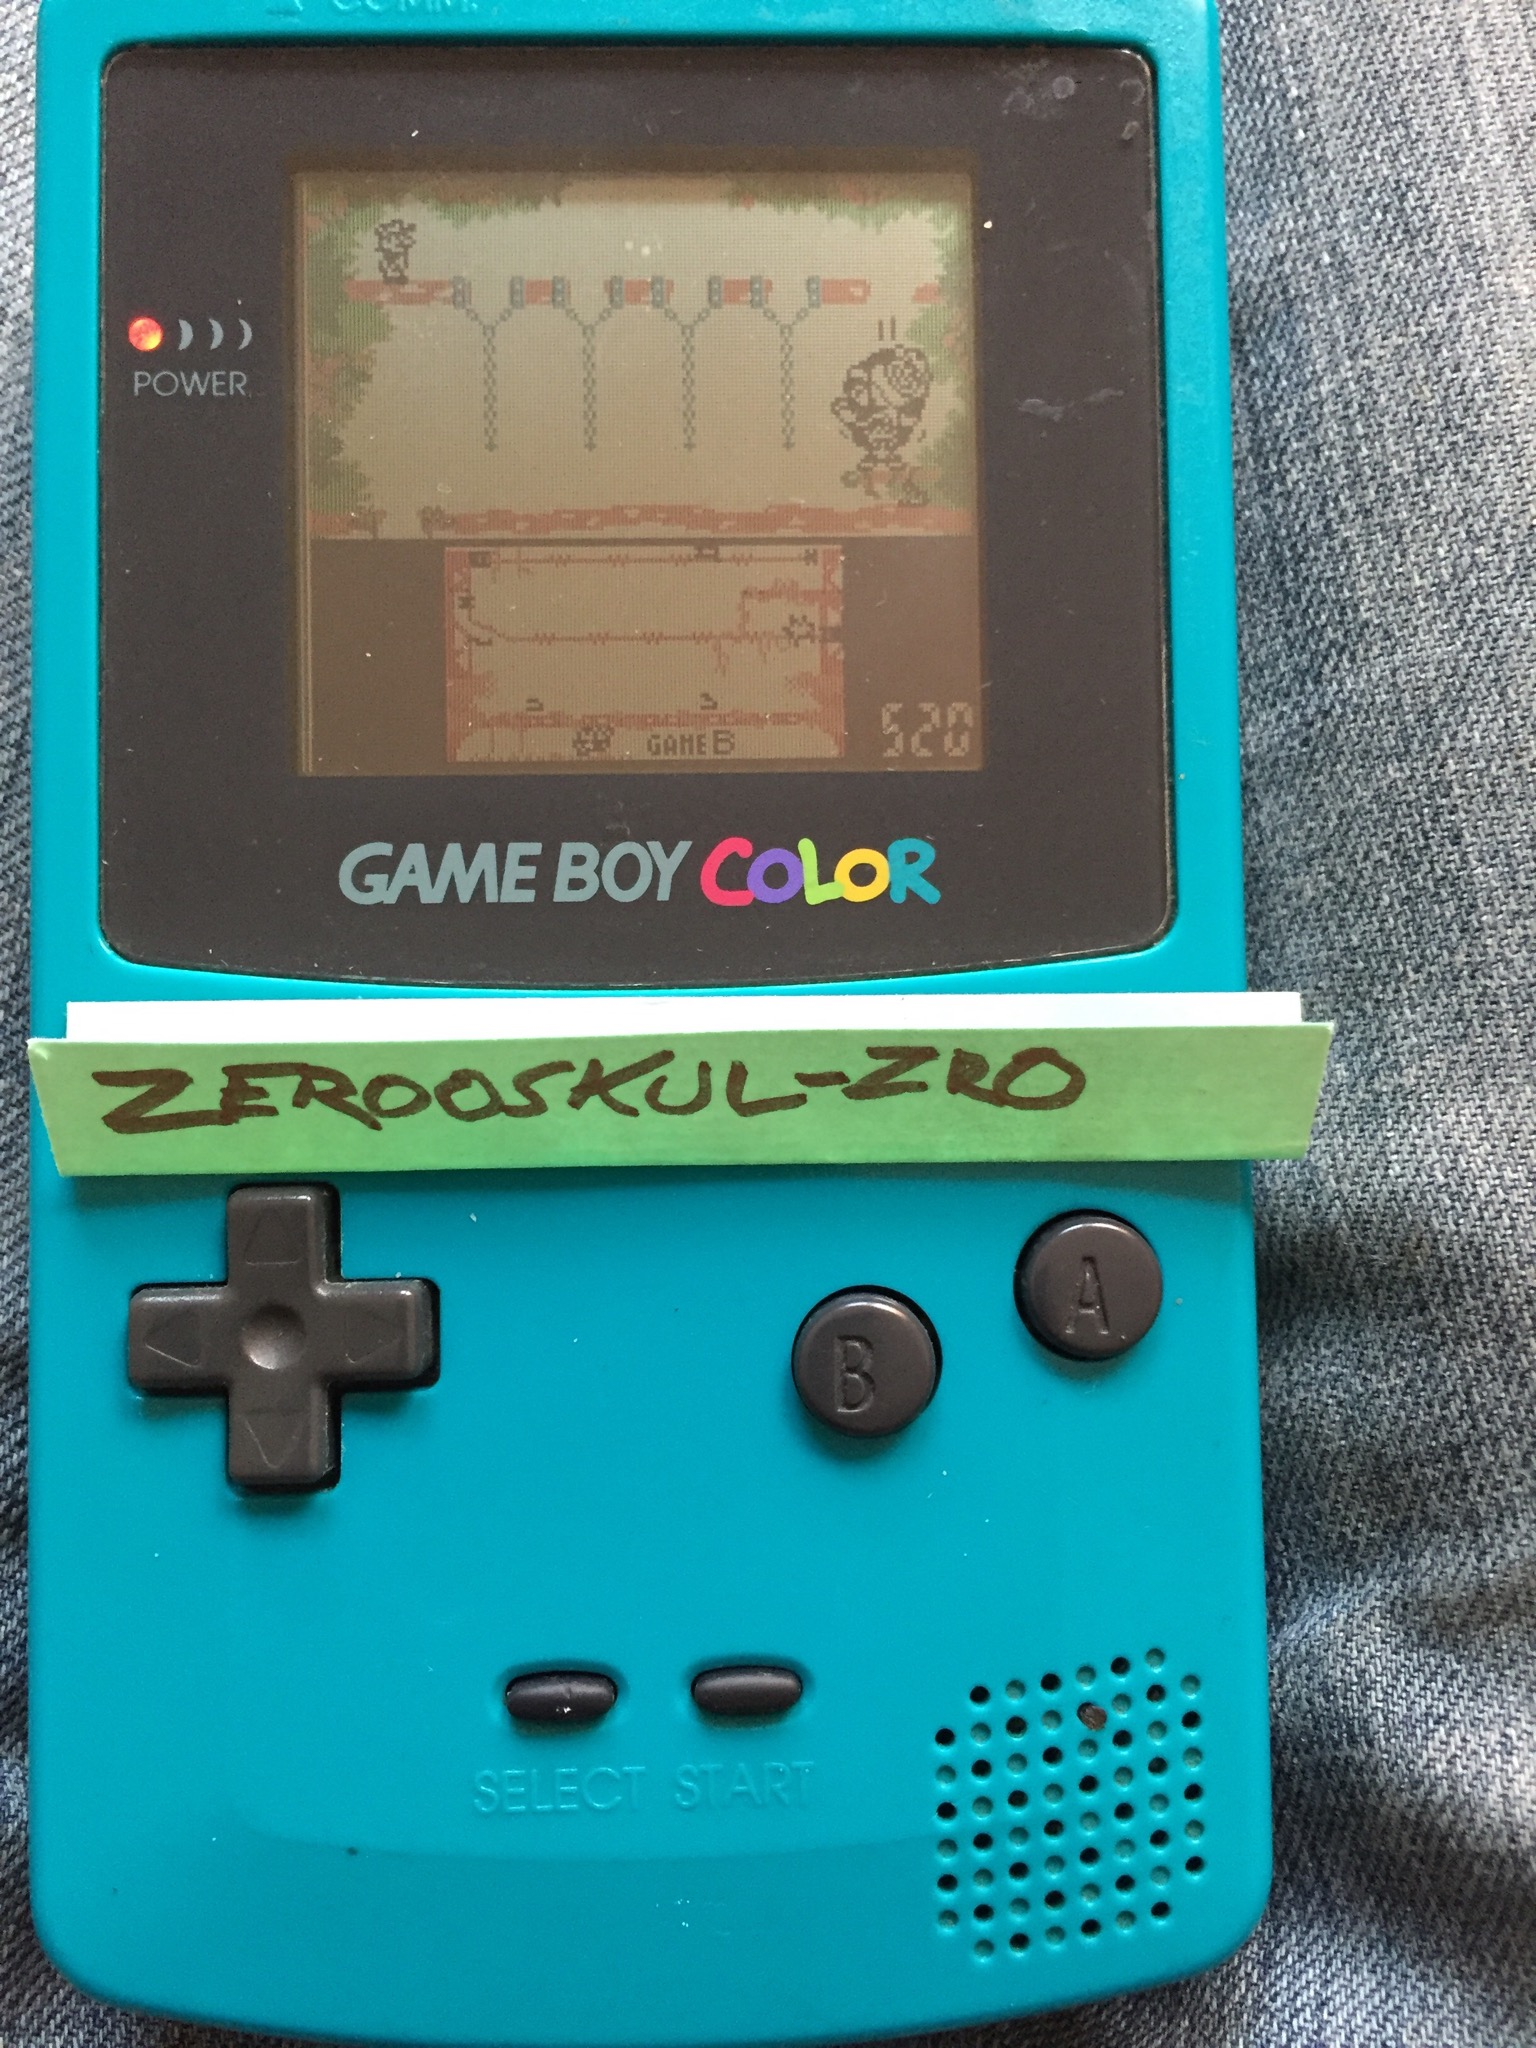 zerooskul: Game & Watch Gallery 2: Donkey Kong II [Classic: Hard] (Game Boy Color) 563 points on 2018-07-01 16:21:14